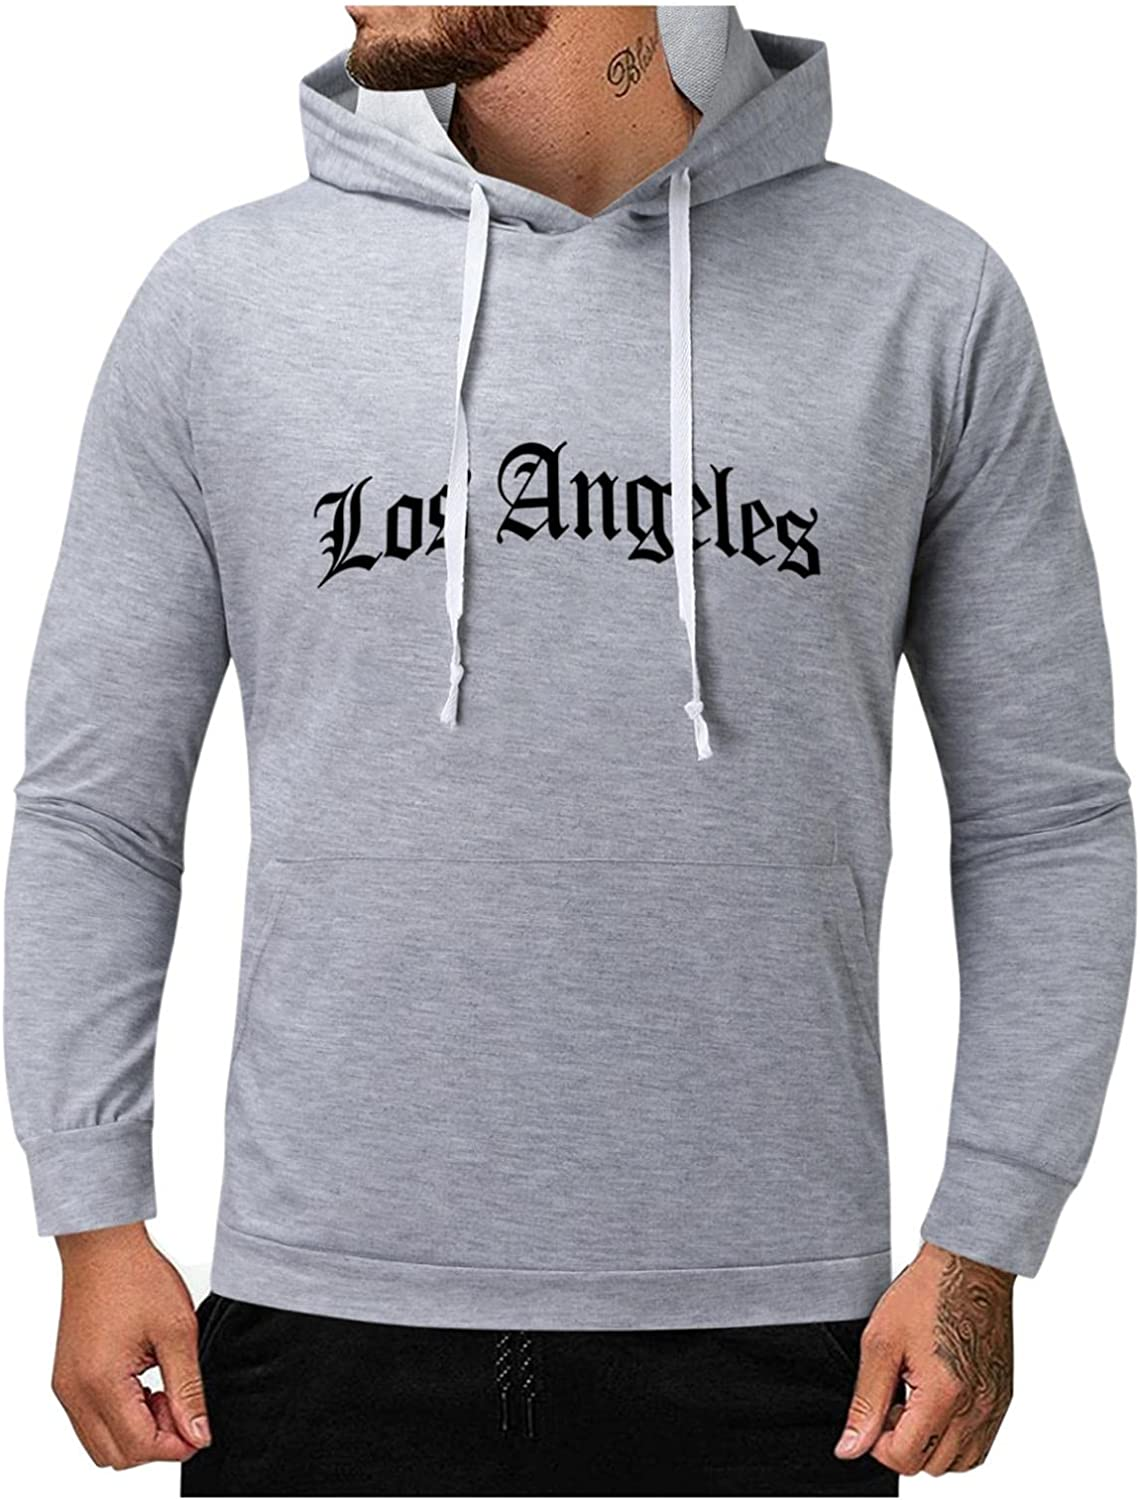 Qsctys Men's Casual Lightweight Pullover Hoodies Long Sleeve Hooded Sweatshirts Fashion Letter Print Slim Fit Men's Clothing